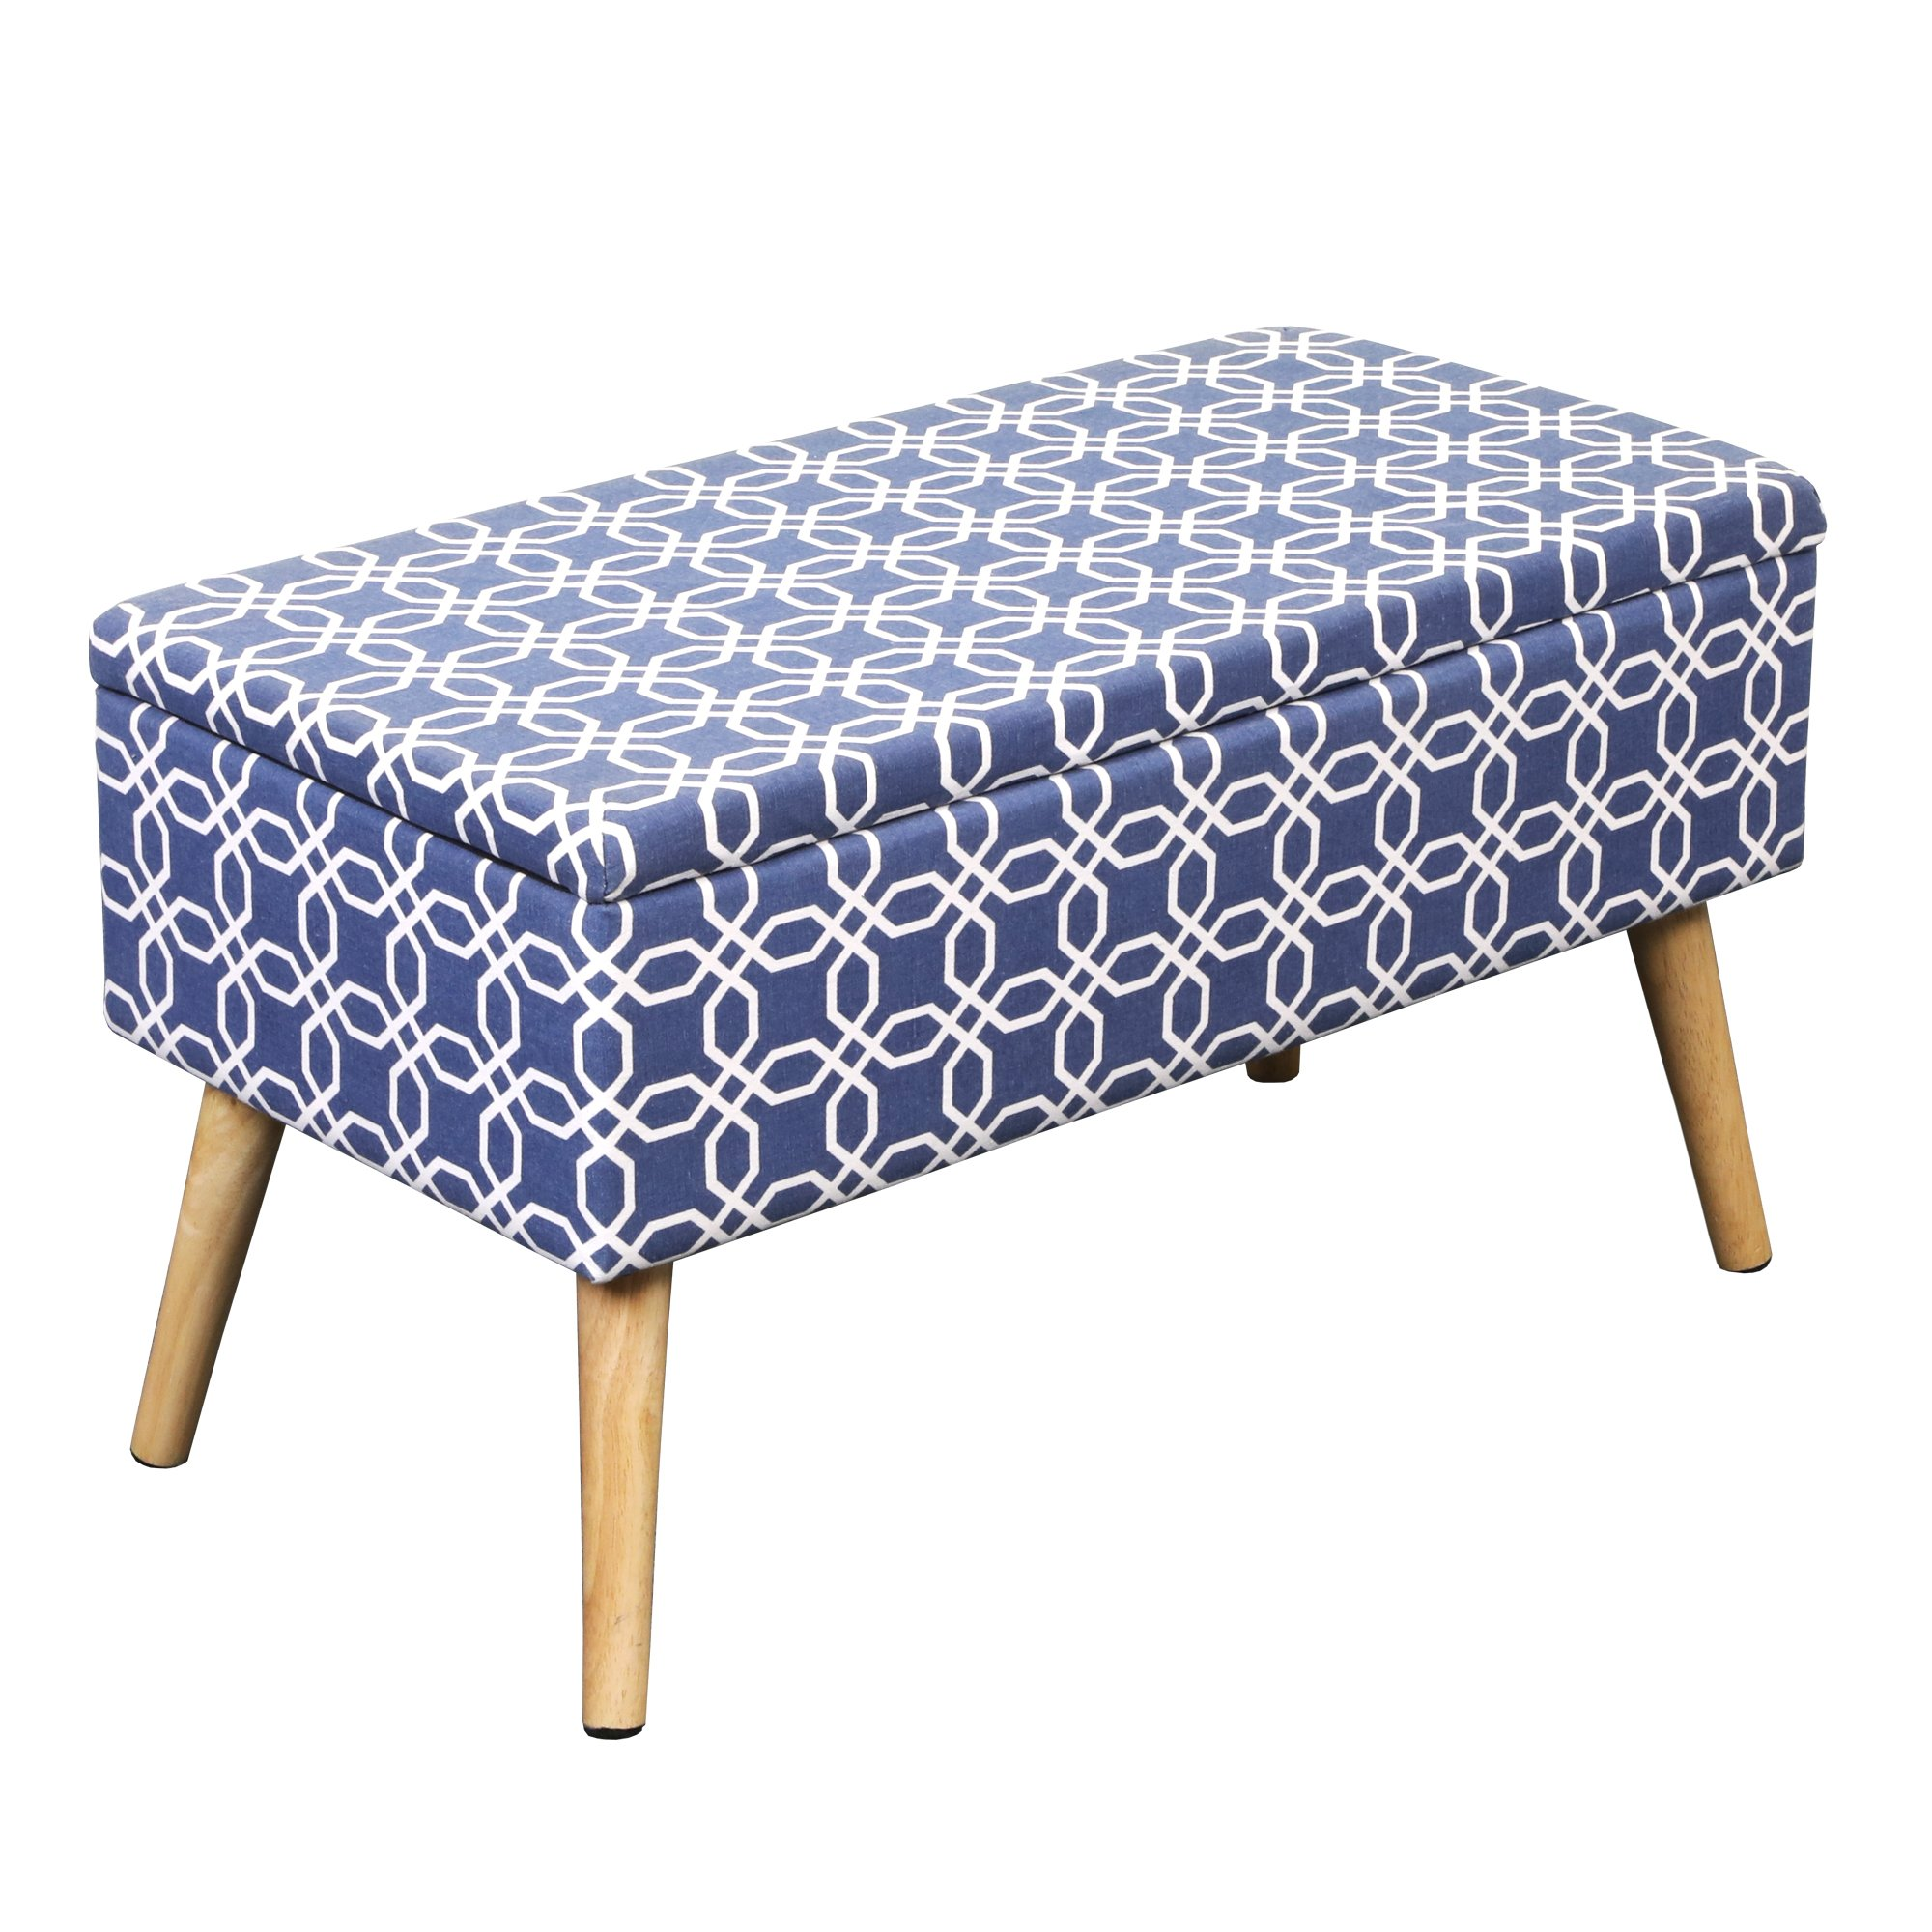 Otto & Ben 30'' Storage Bench - Mid Century Ottoman with EASY LIFT Top, Upholstered Shoe Ottomans Seats for Entryway and Bedroom, Octagon Blue